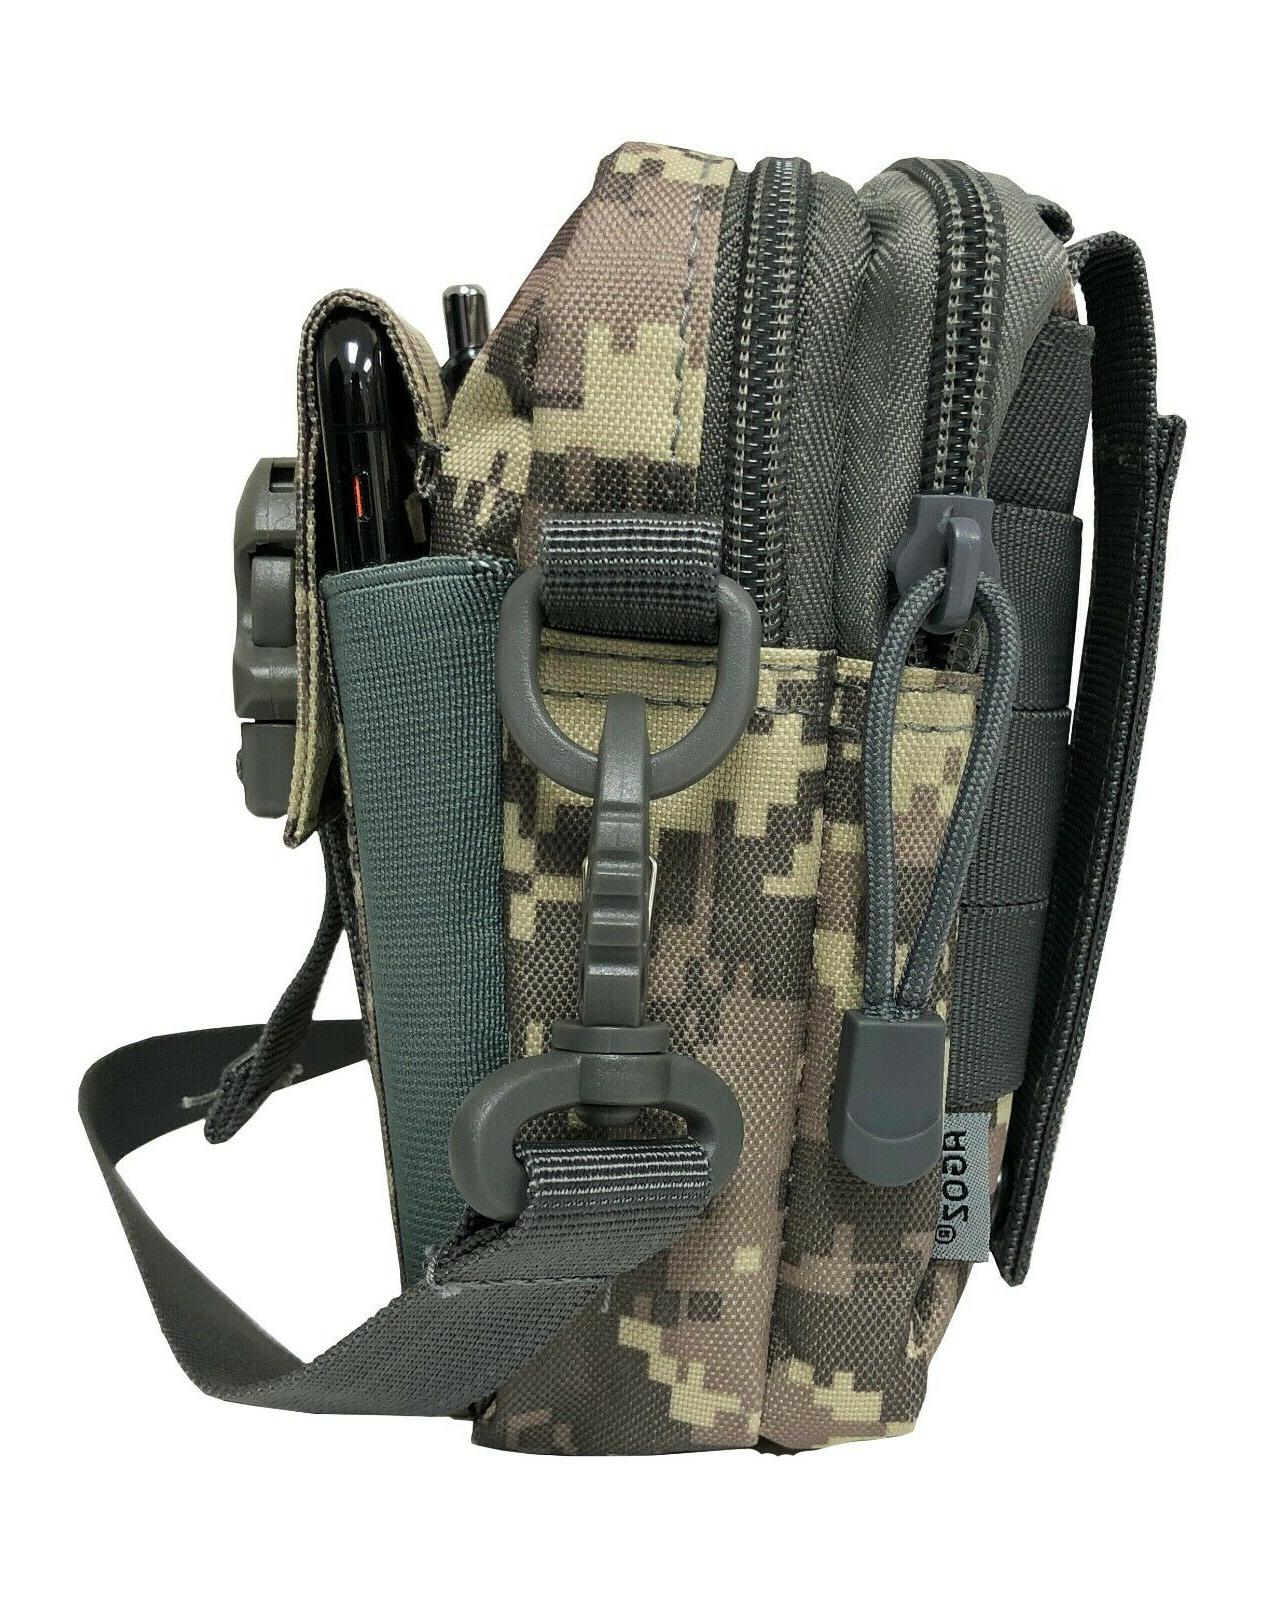 MOLLE Tactical Pouch Utility Gear Outdoor Phone